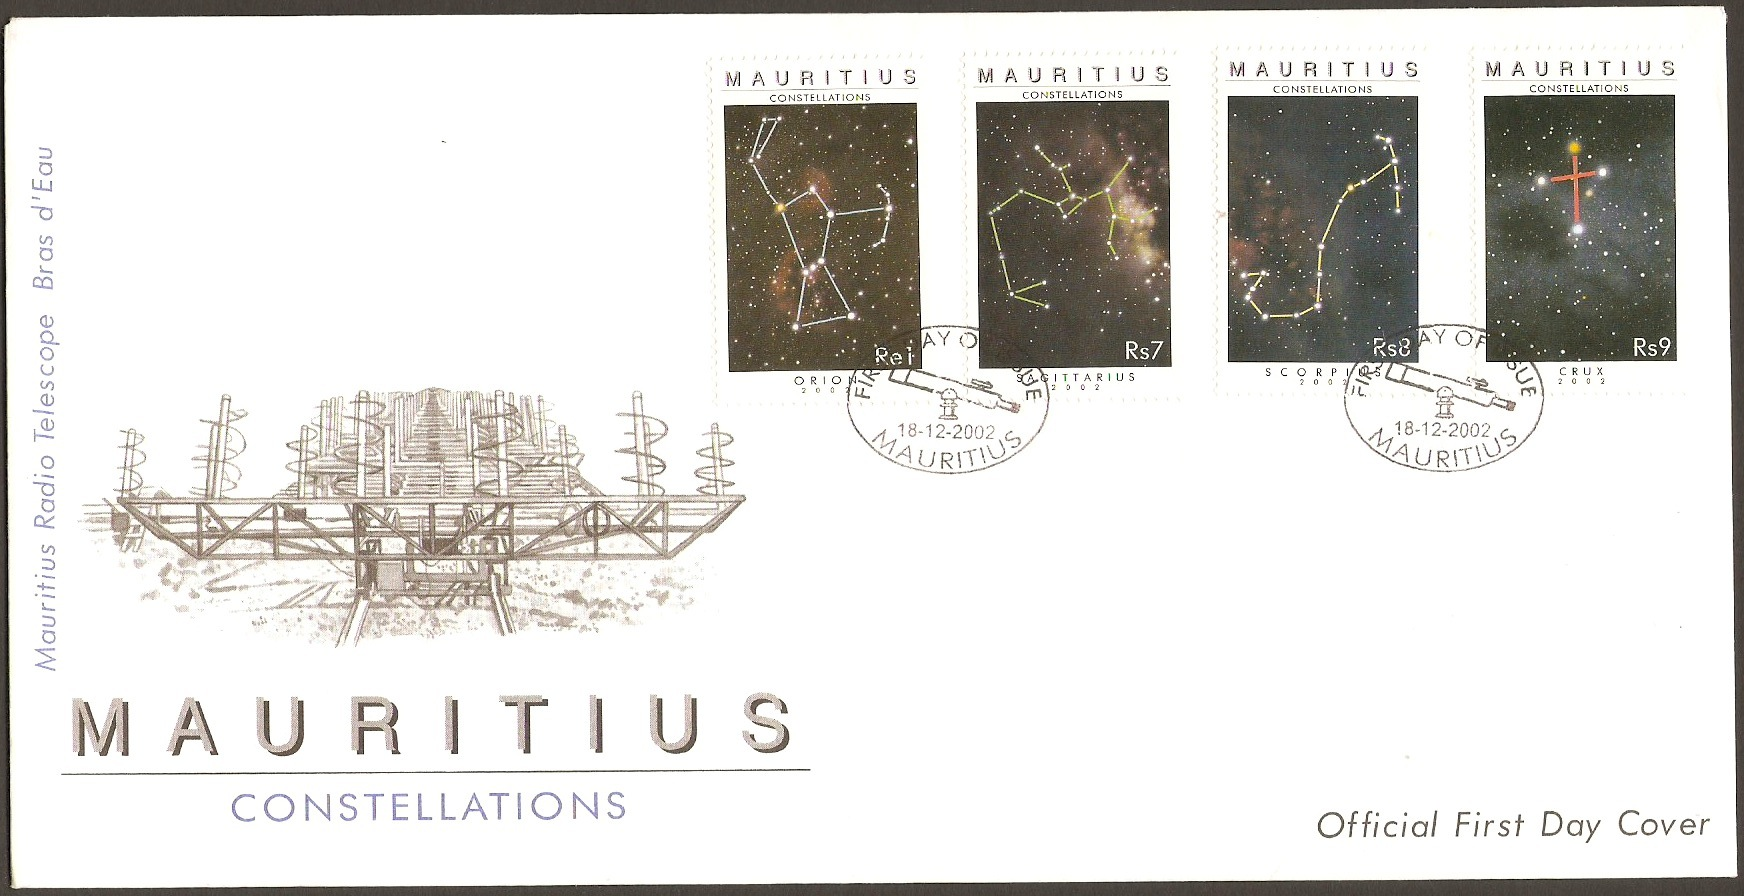 Mauritius 2001 Constellations Series FDC.